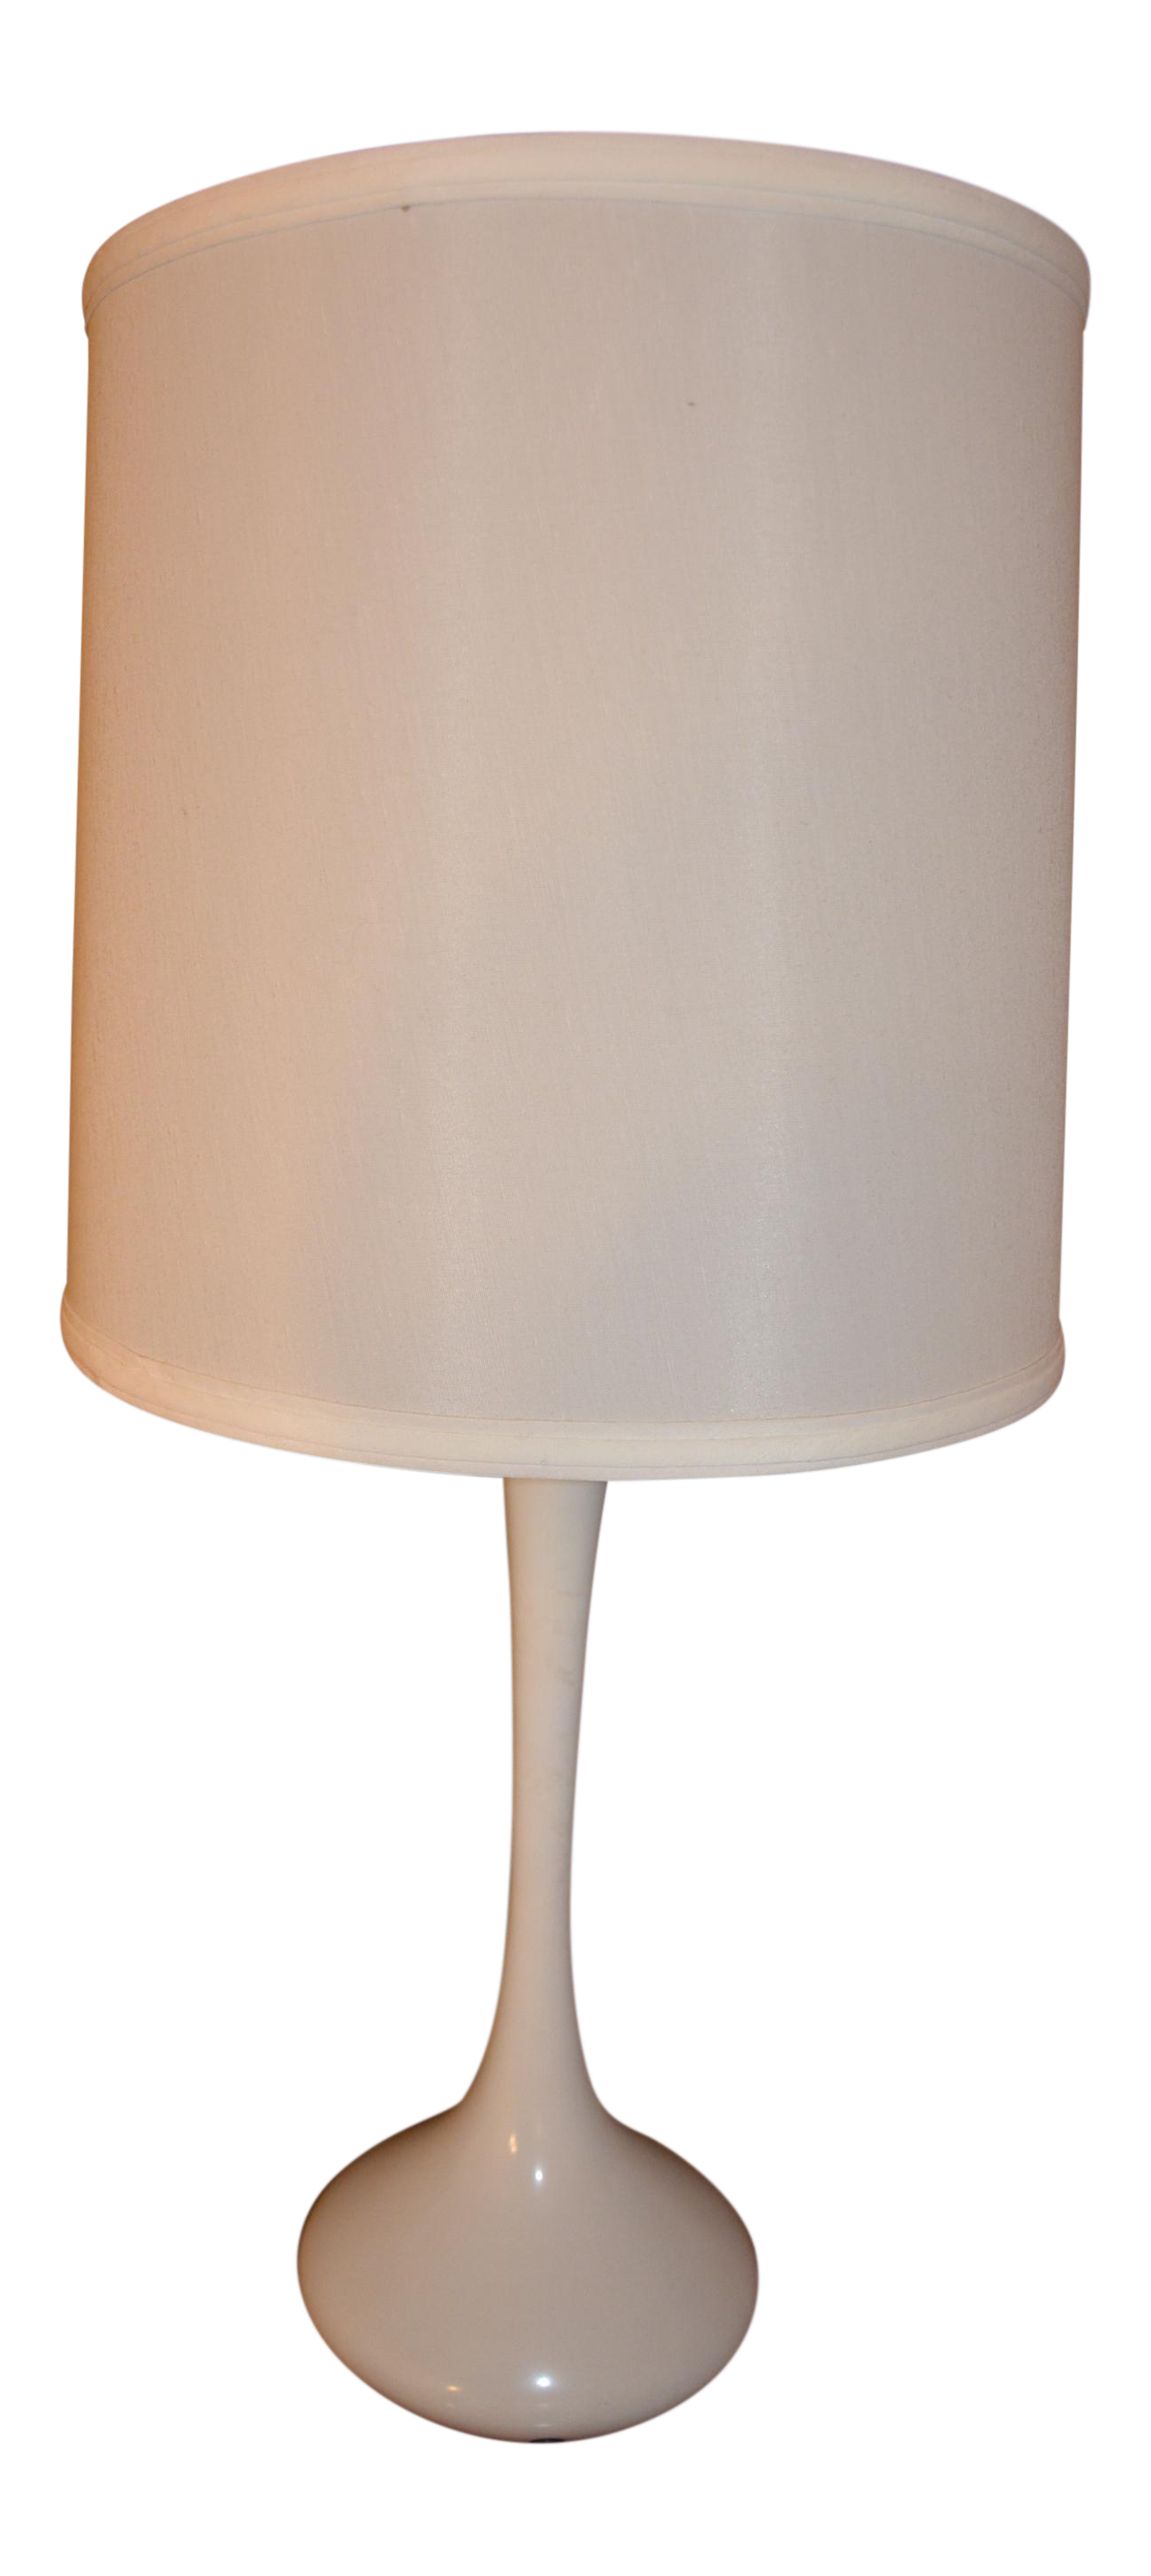 Captivating Mid Century Modern Tulip Table Lamp By Laurel Lamp Co. In White